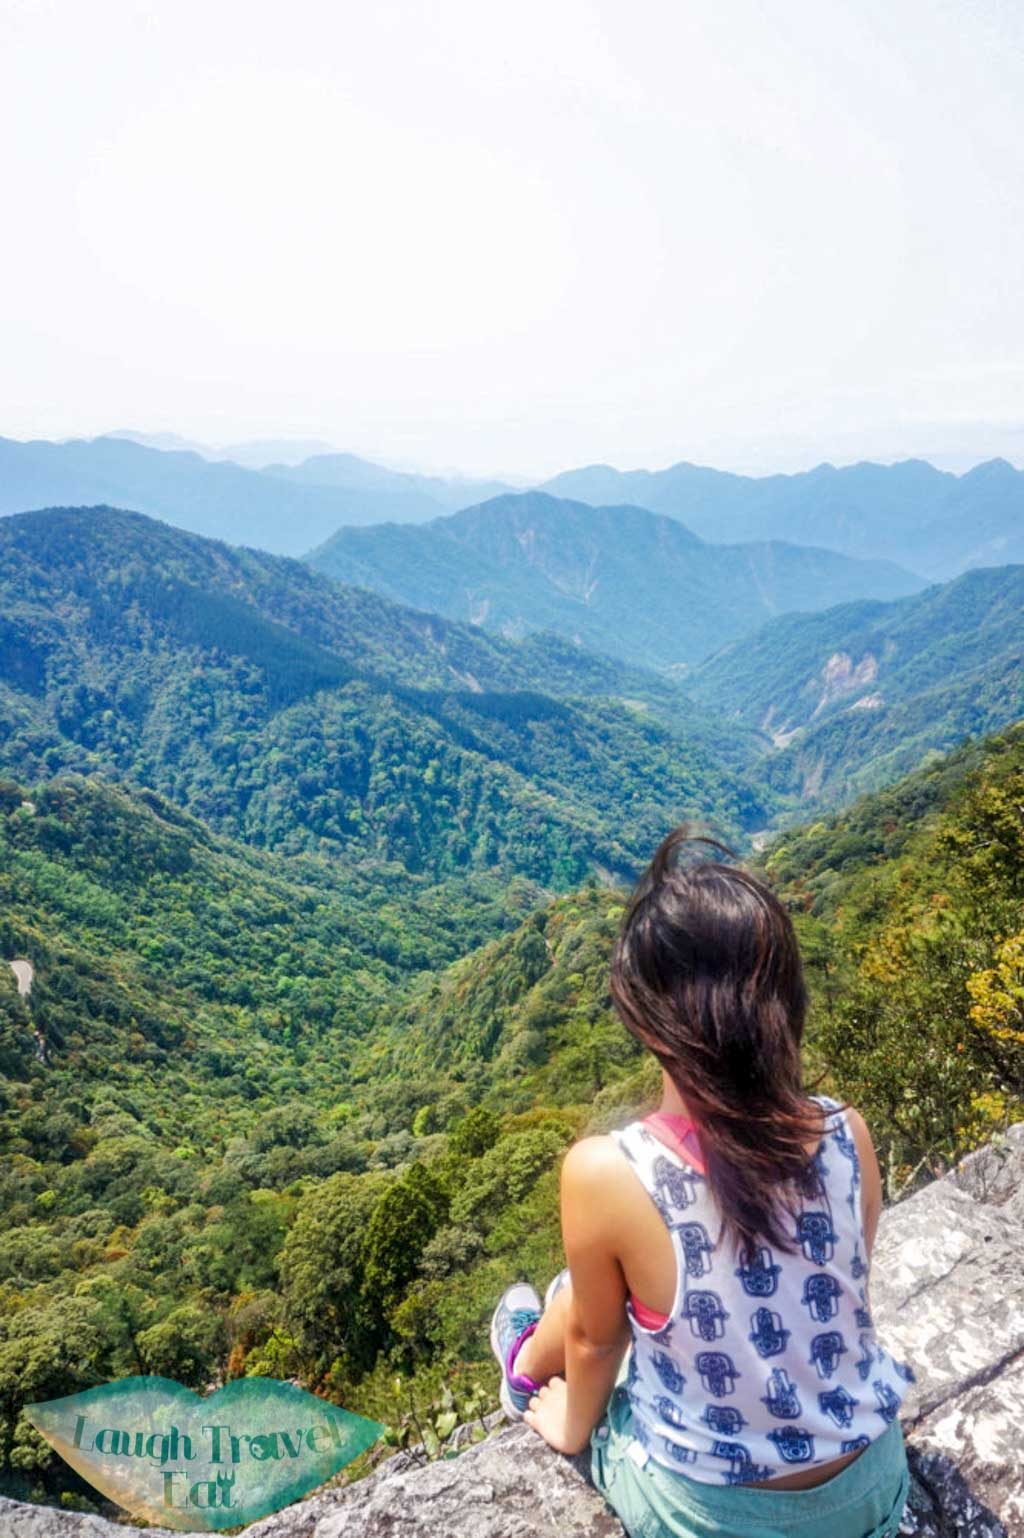 Stunning view of valley with rivers along the trail up to Yuan Zui Mountain in Dasyueshan National Forest Recreational Area, Taichung - Laugh Travel Eat